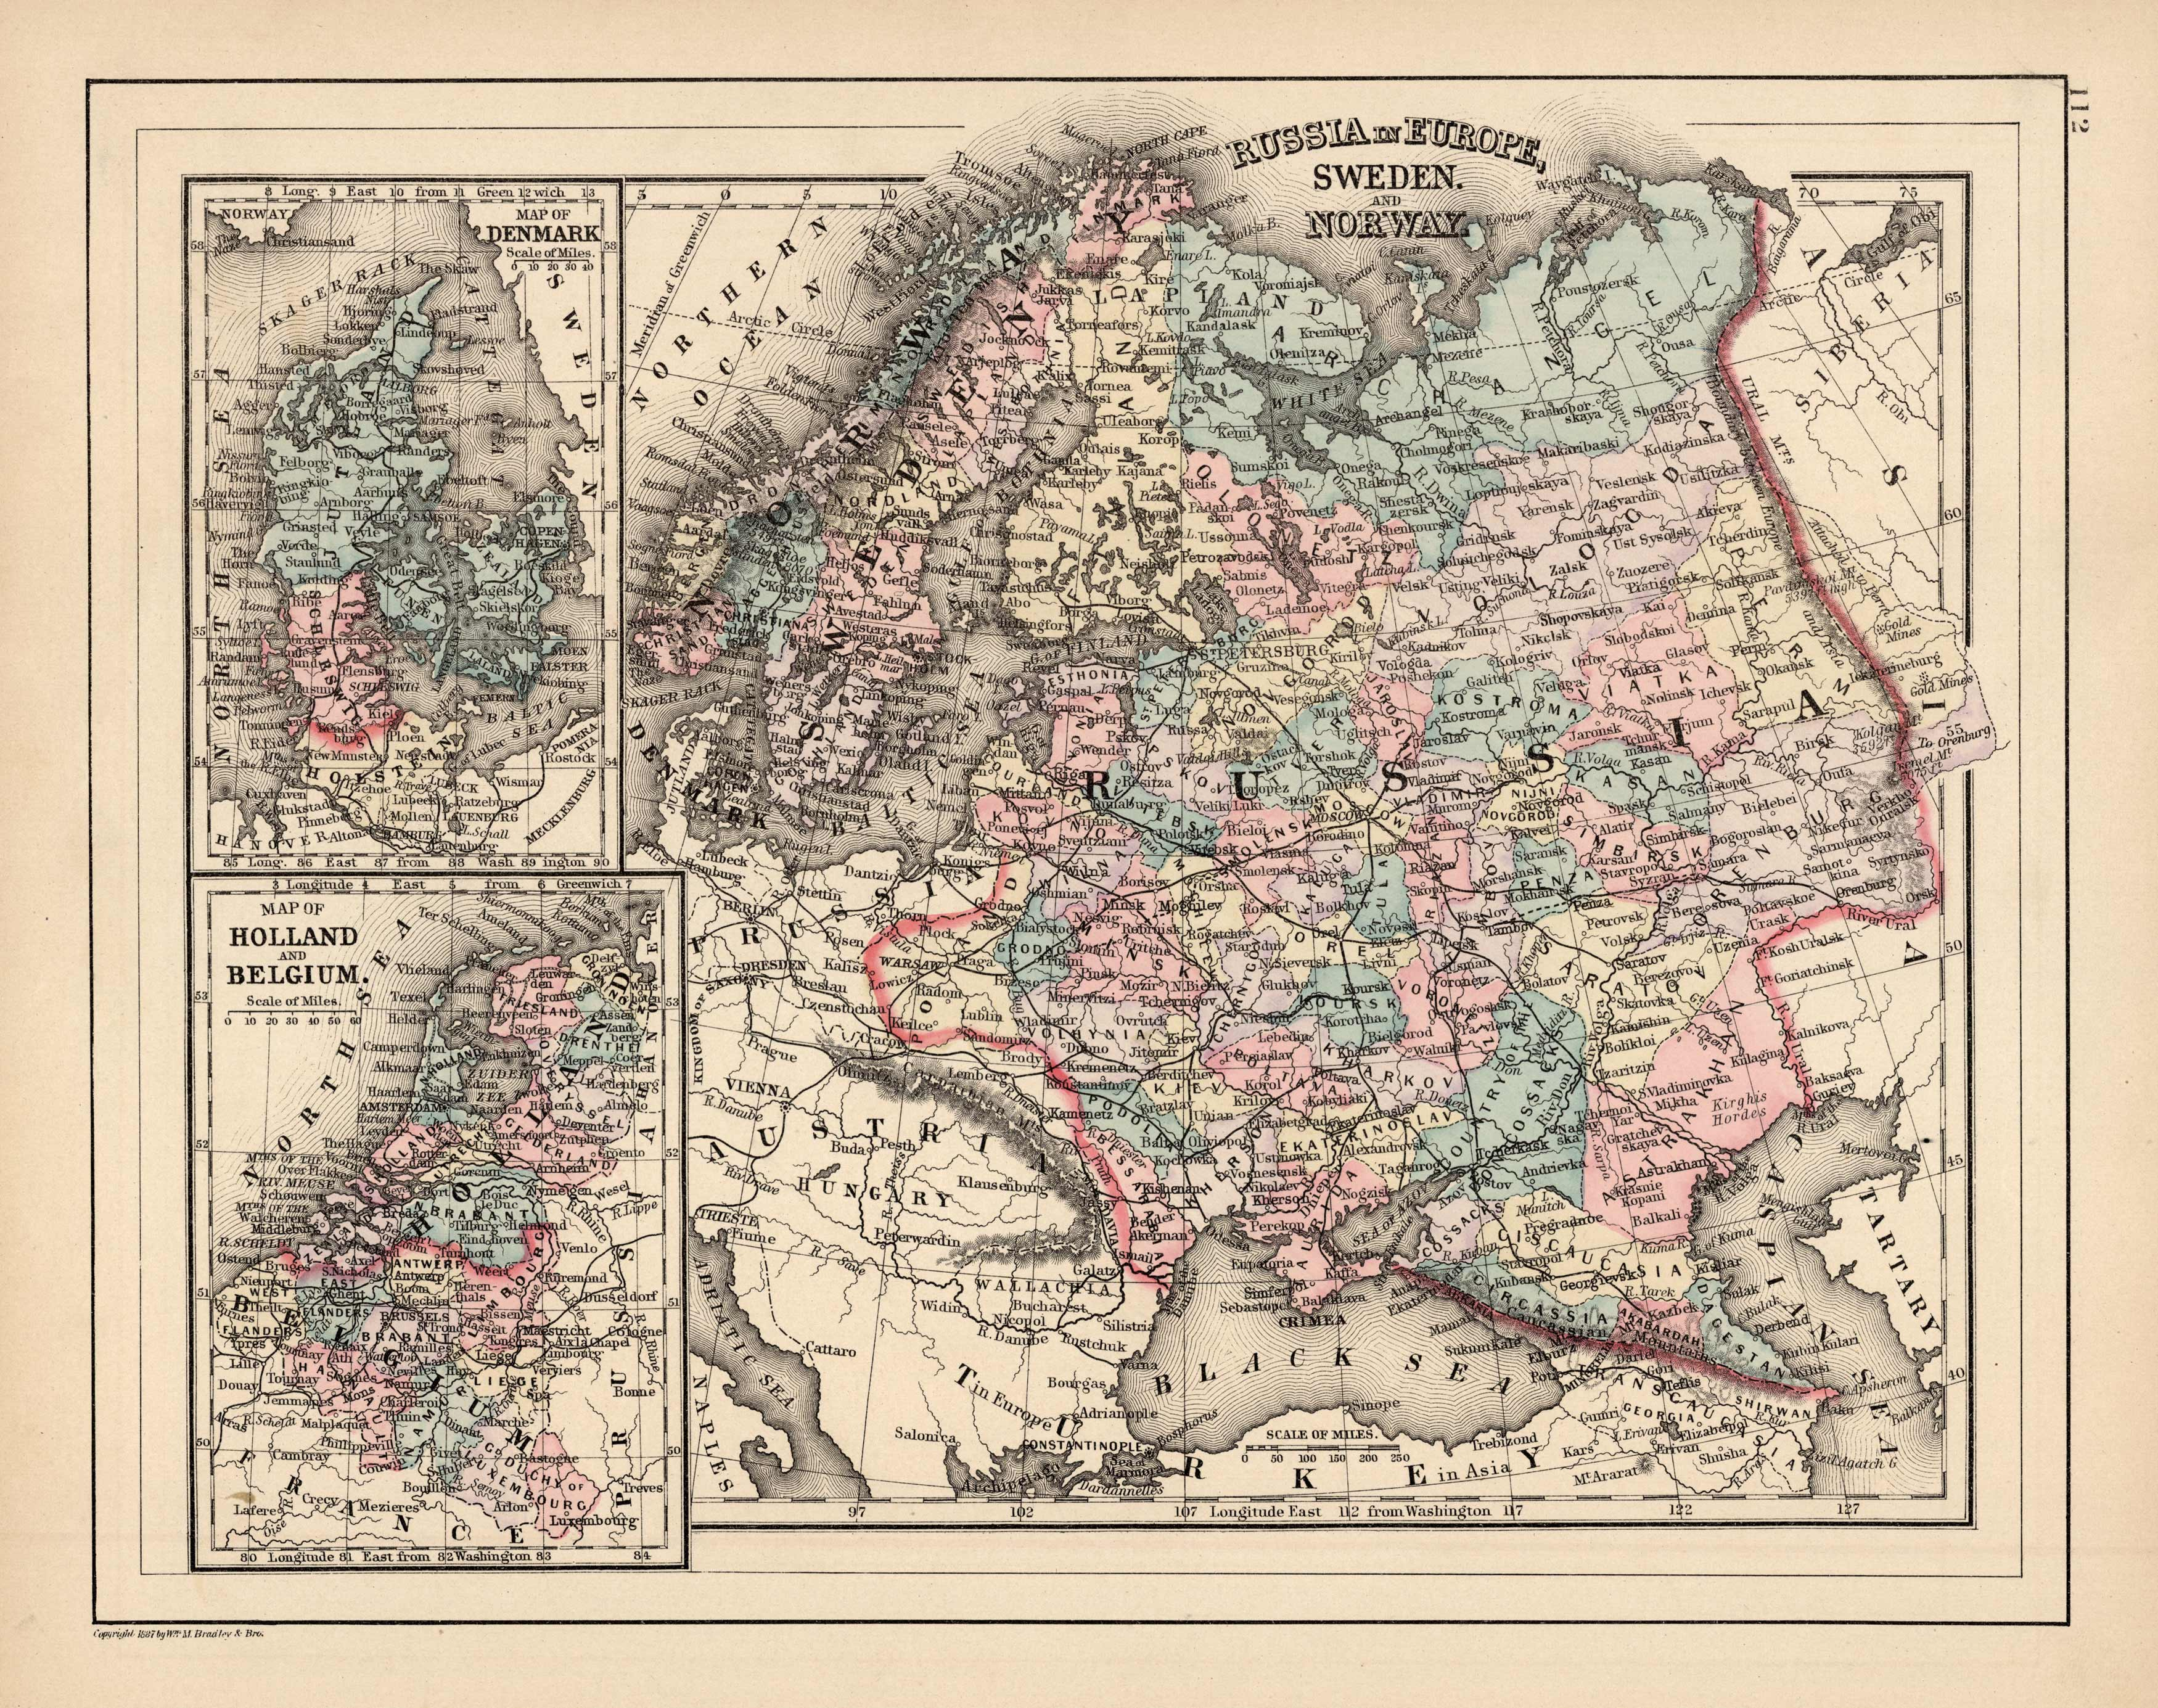 Picture of: Russia In Europe Sweden And Norway Map Of Denmark Map Of Holland And Belgium Art Source International